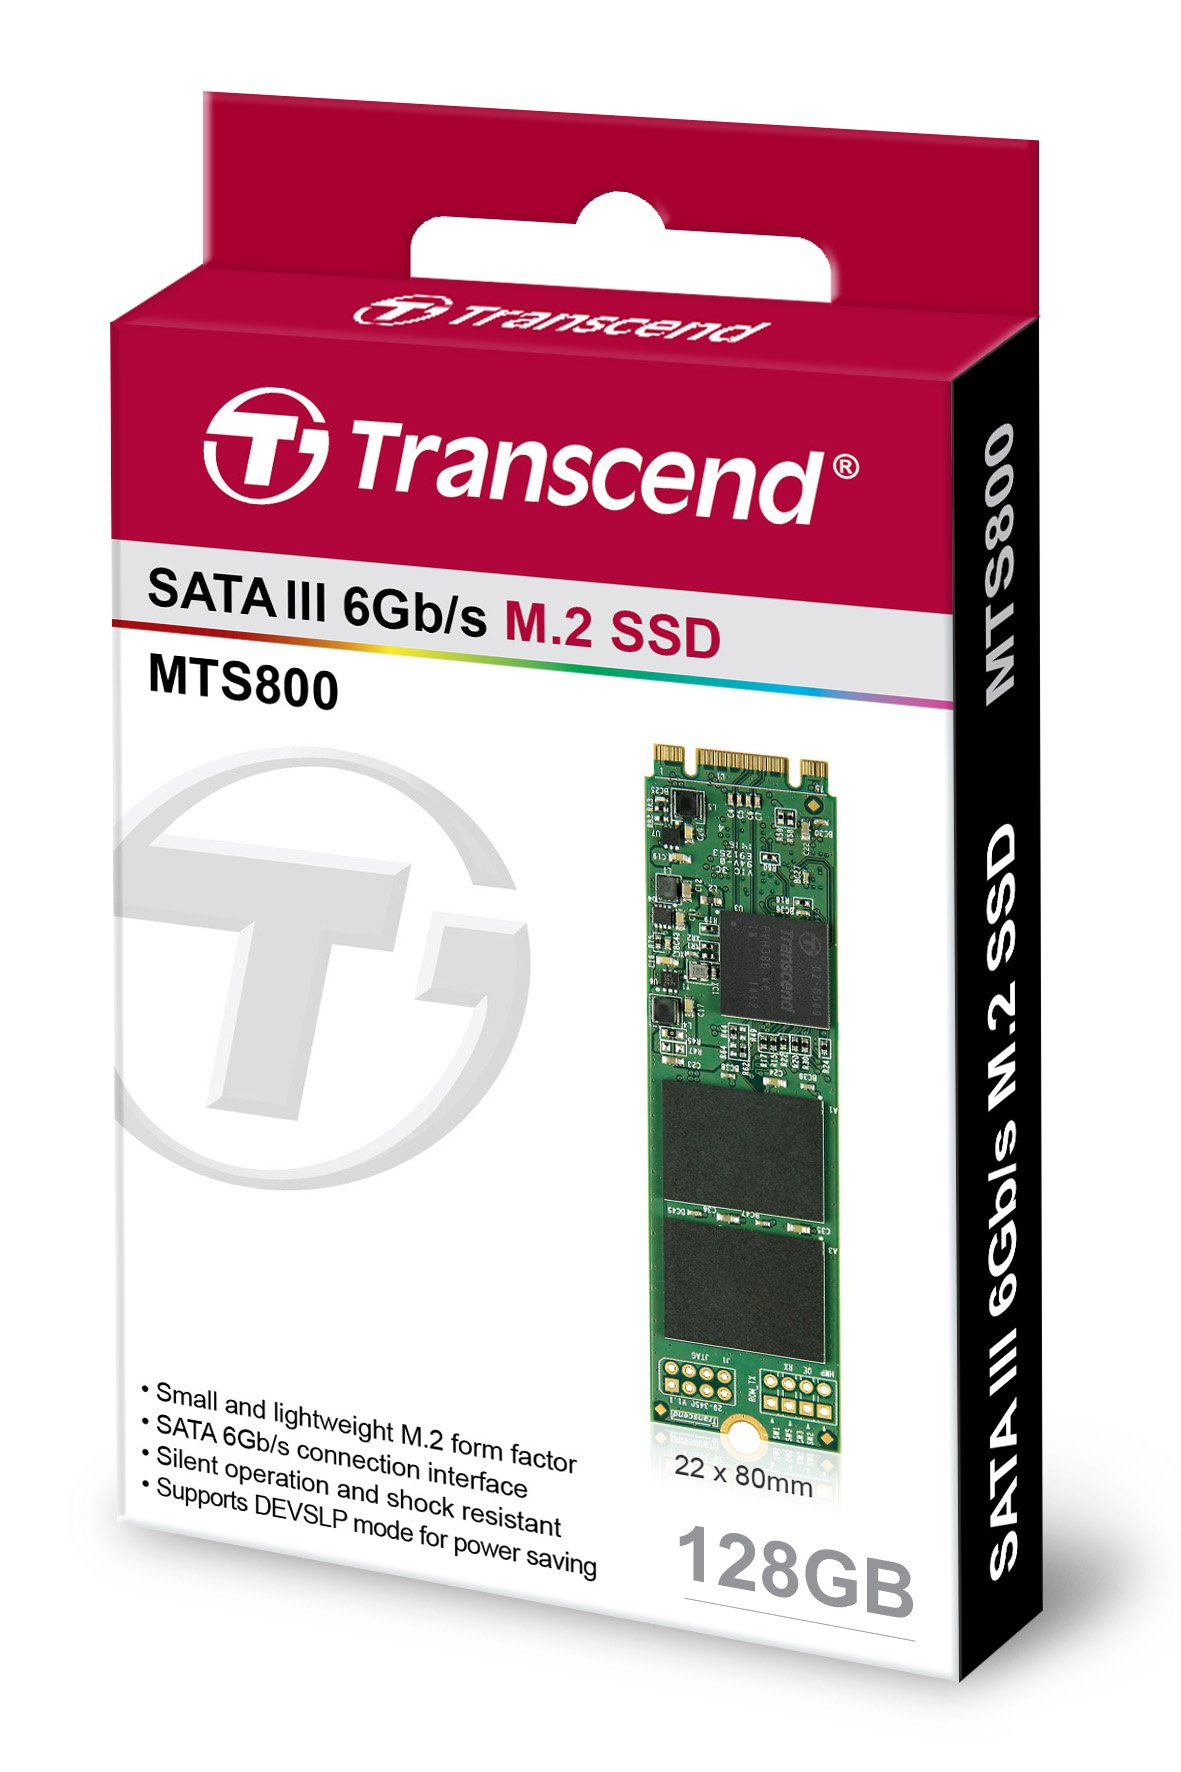 Transcend 128GB SATA III 6Gb/s MTS800 80 mm M.2 Solid State Drive (TS128GMTS800) by Transcend (Image #5)